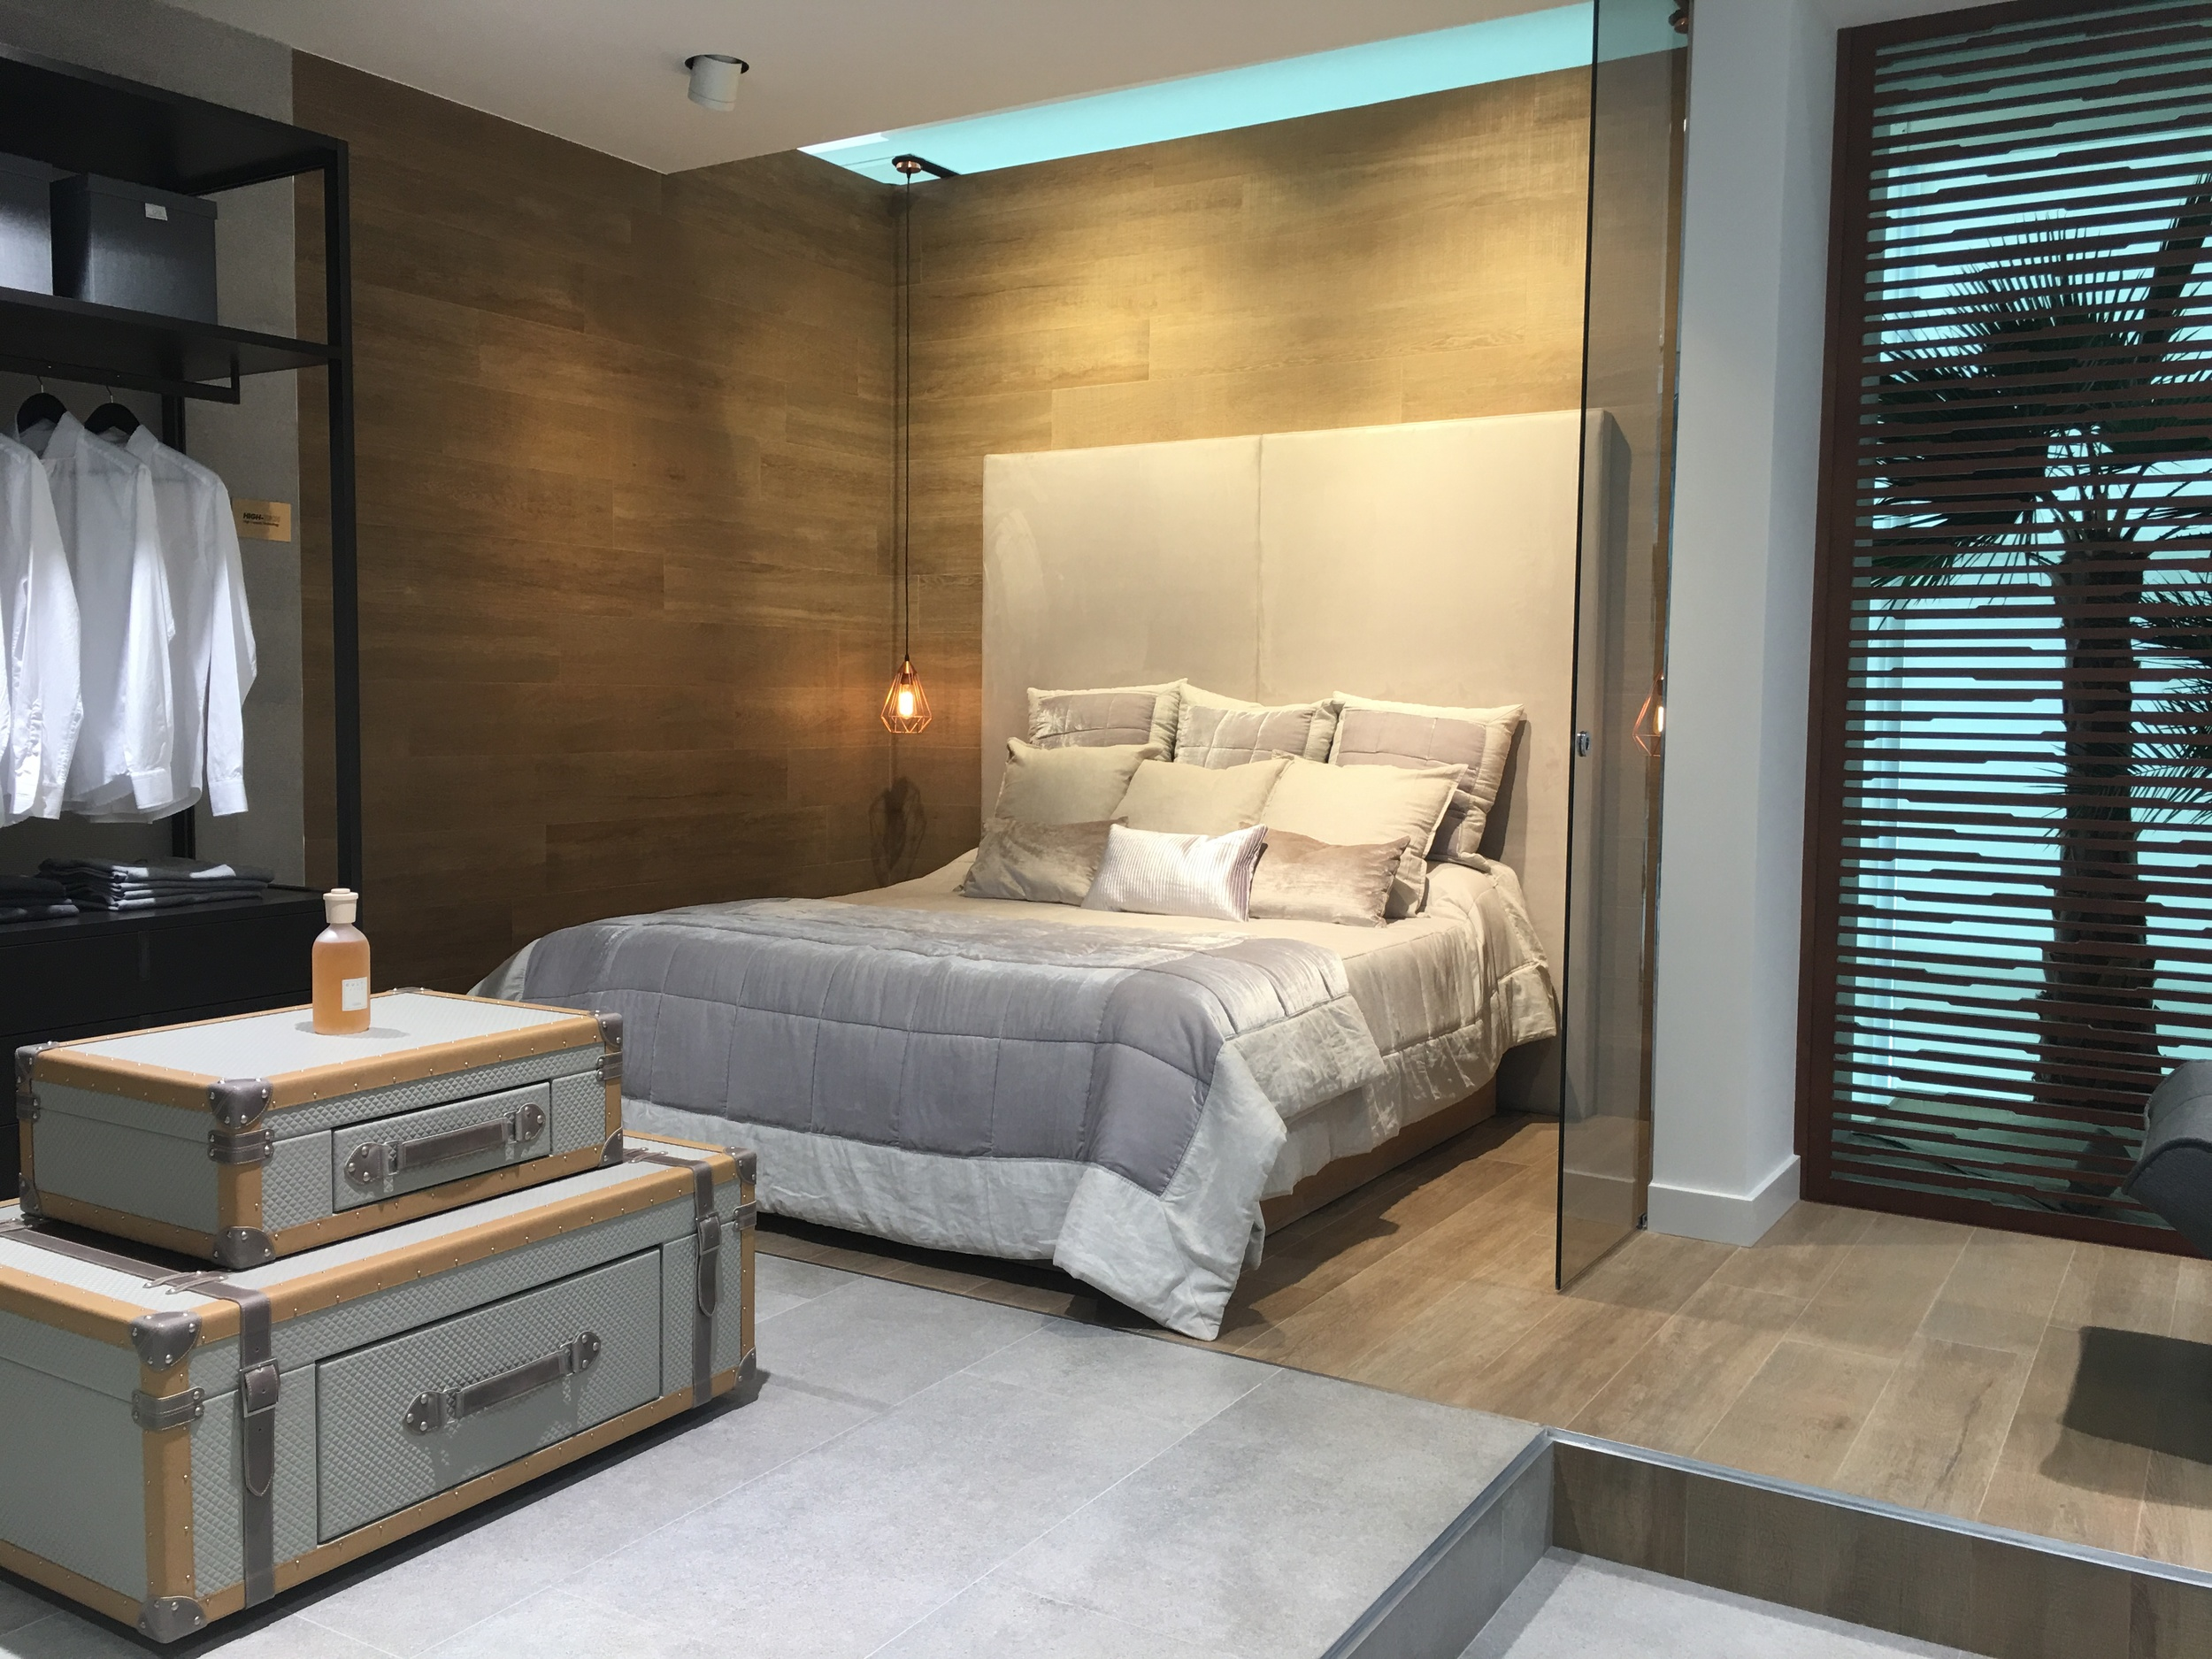 Bedroom lifestyle setting - with wood effect wall tiles